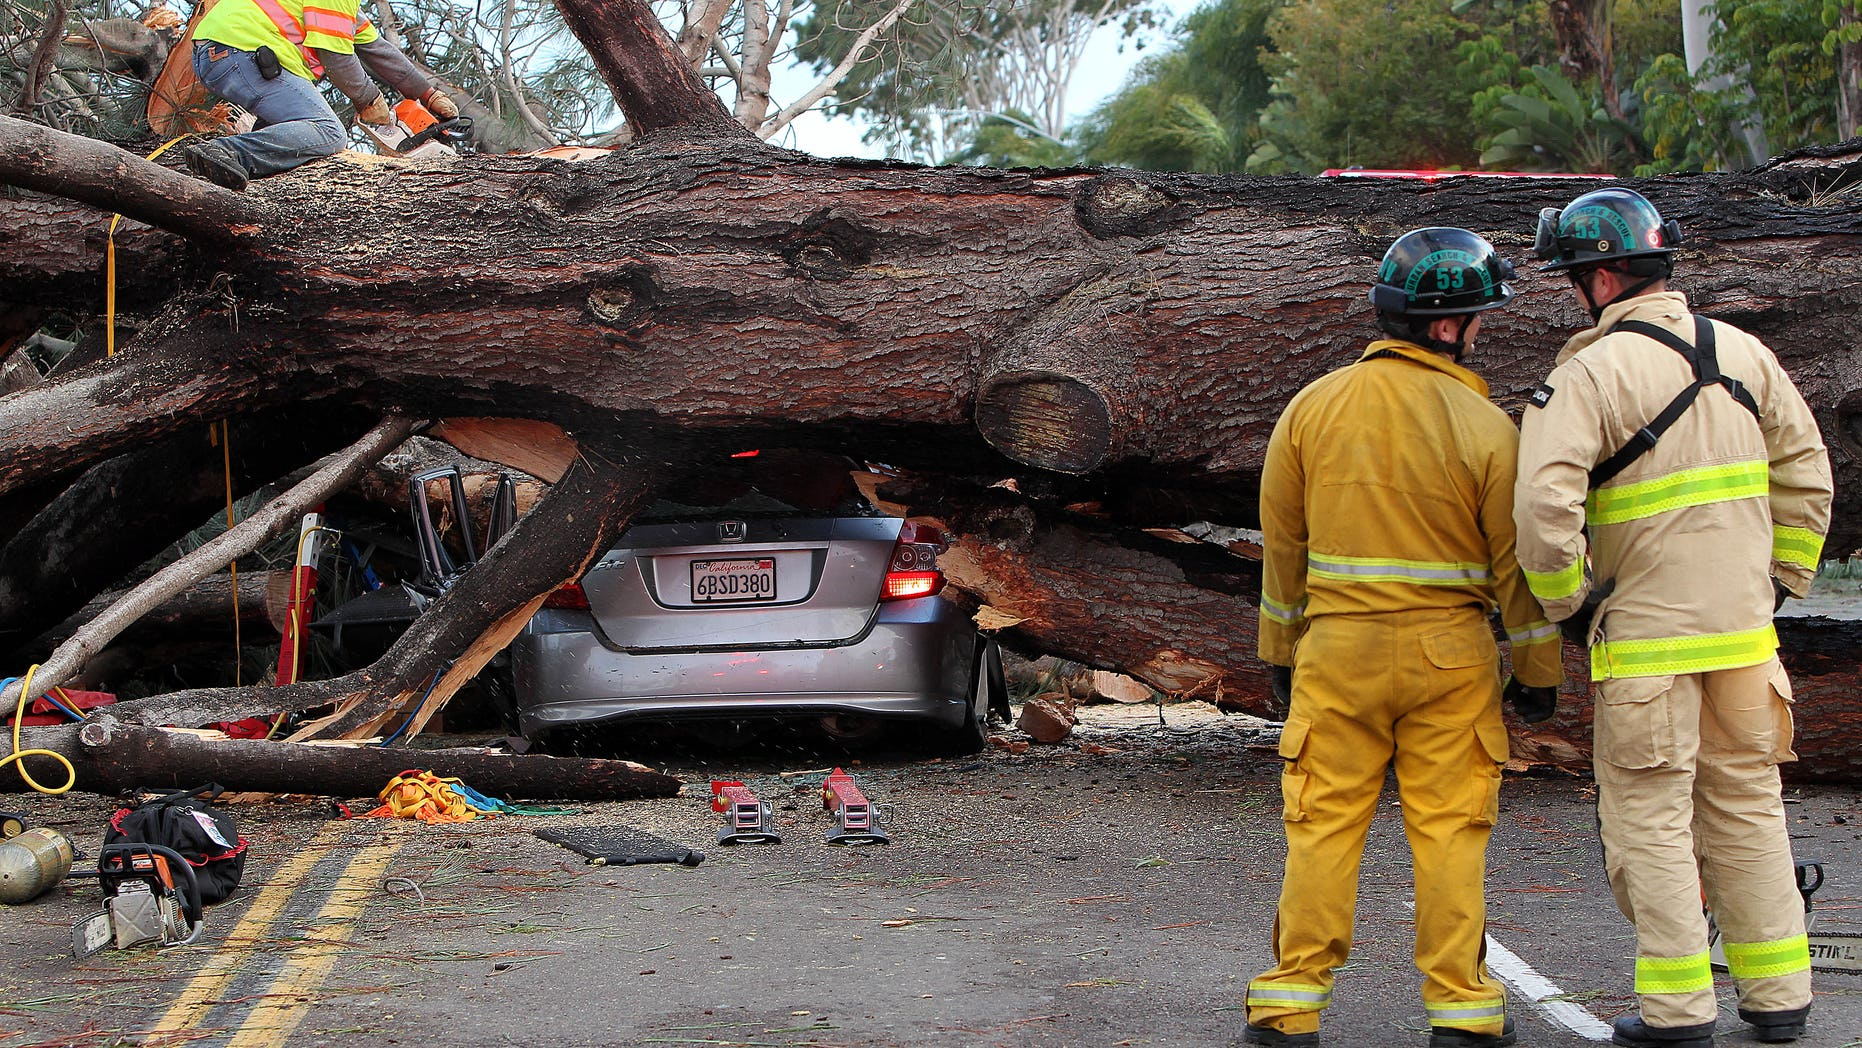 Firefighters work to remove a large tree that fell across multiple lanes of traffic, killing a driver in Pacific Beach, Calif., Sunday.